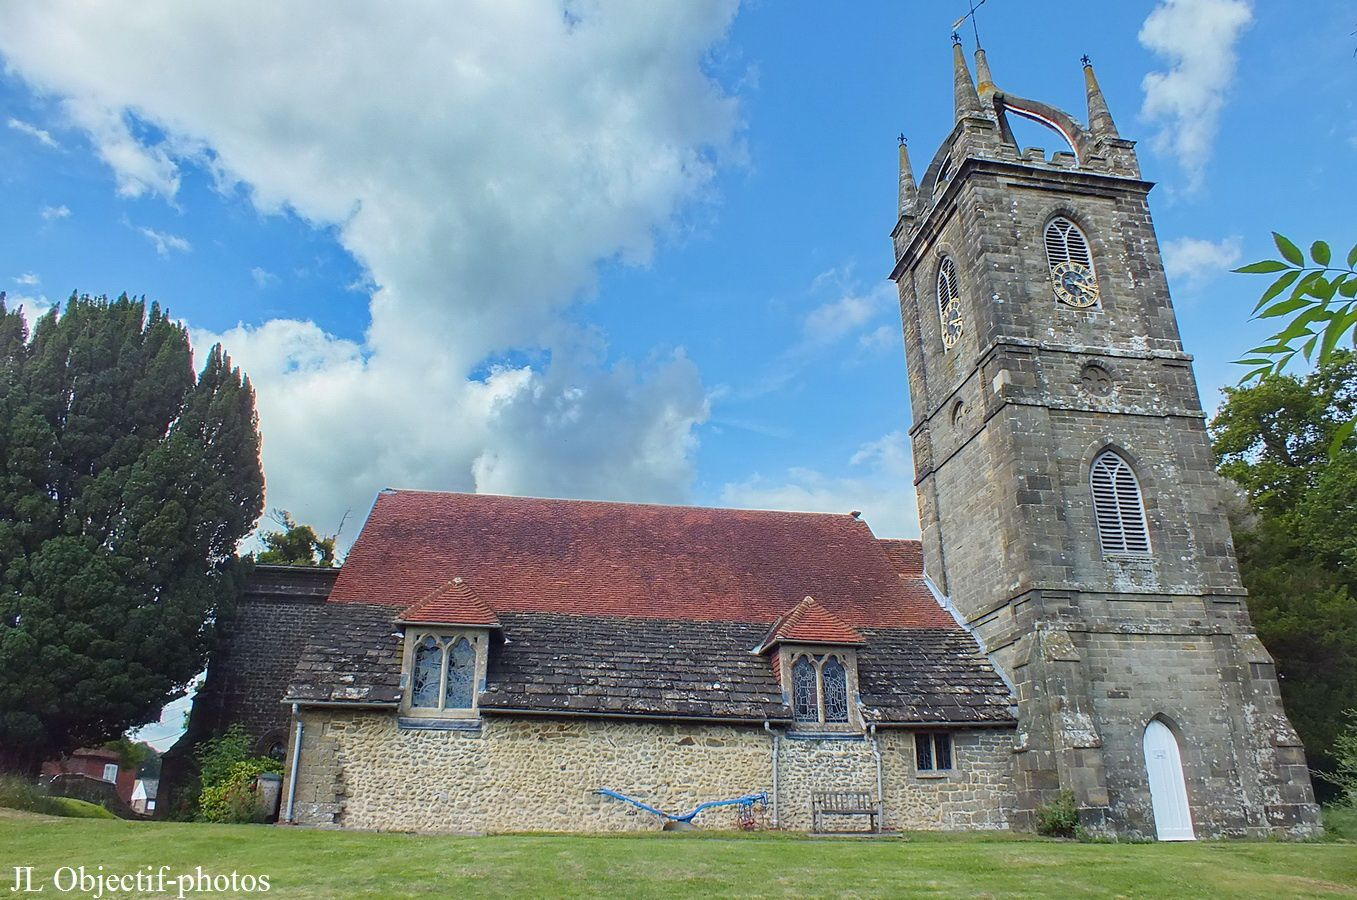 Eglise All Hallows de Tillington, West Sussex, Angleterre.  All Hallows church, Tillington, West Sussex, England